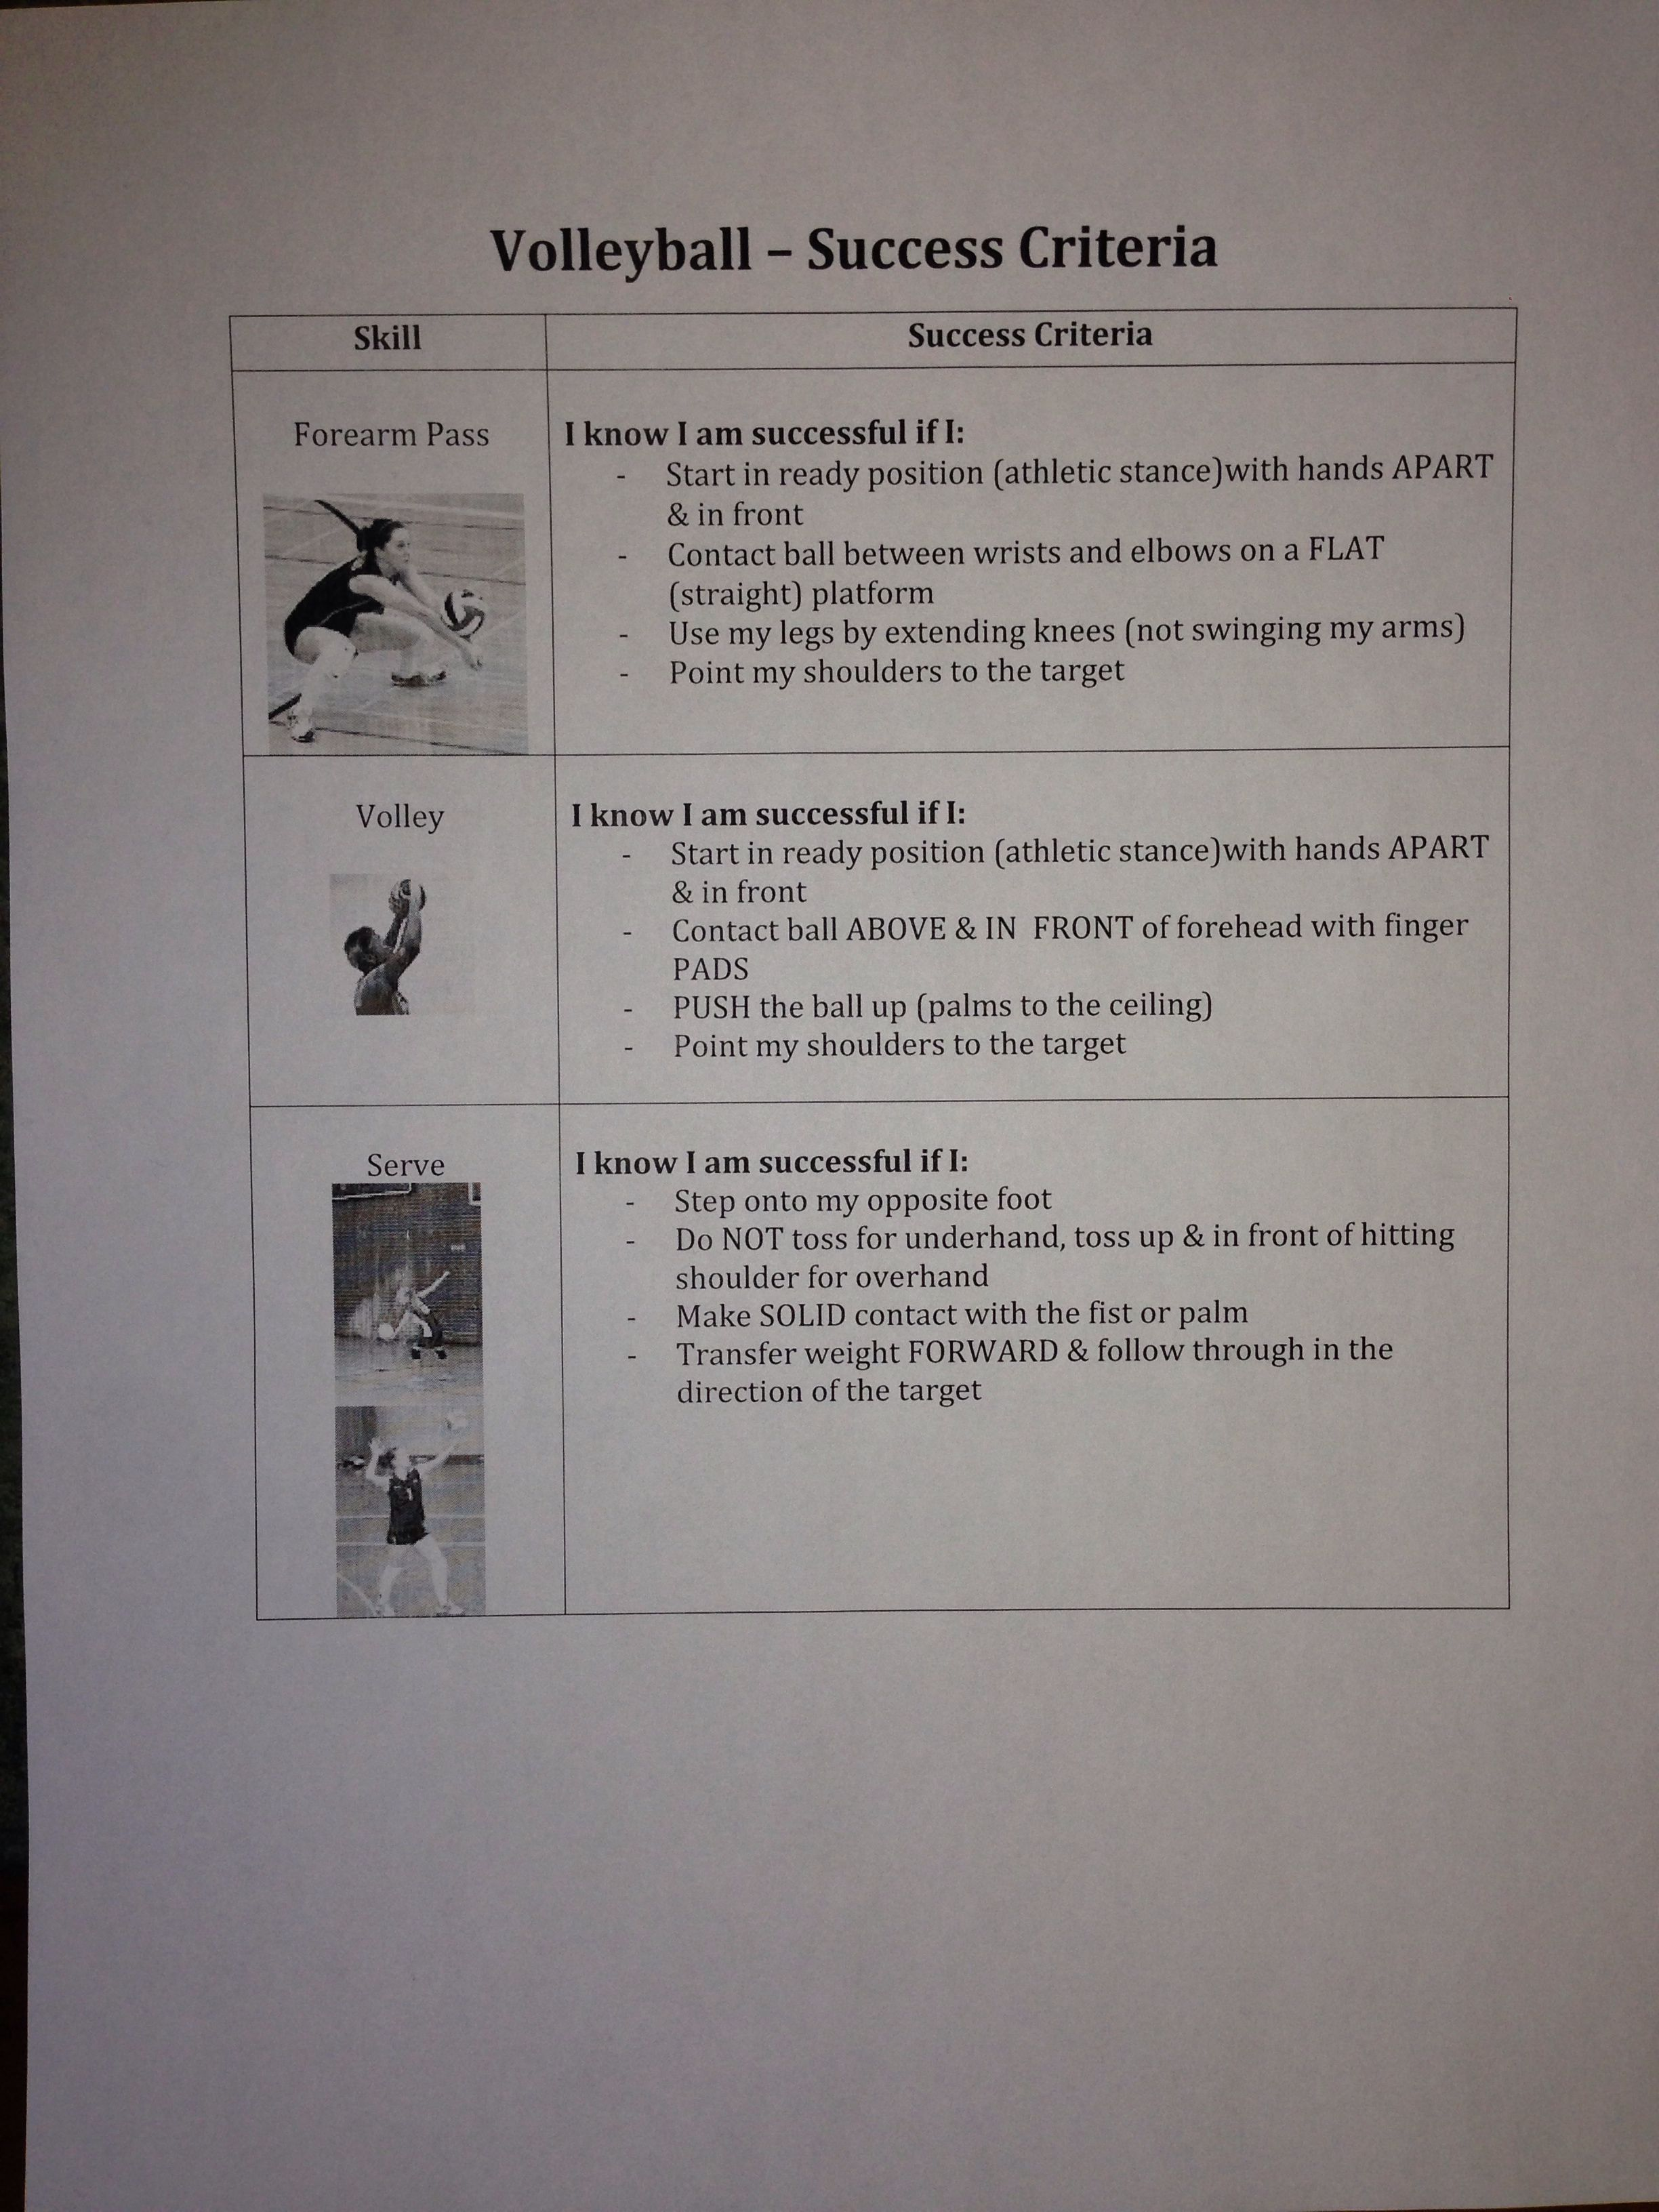 Elementary Classroom Games ~ Success criteria checklist for assessing volleyball skills